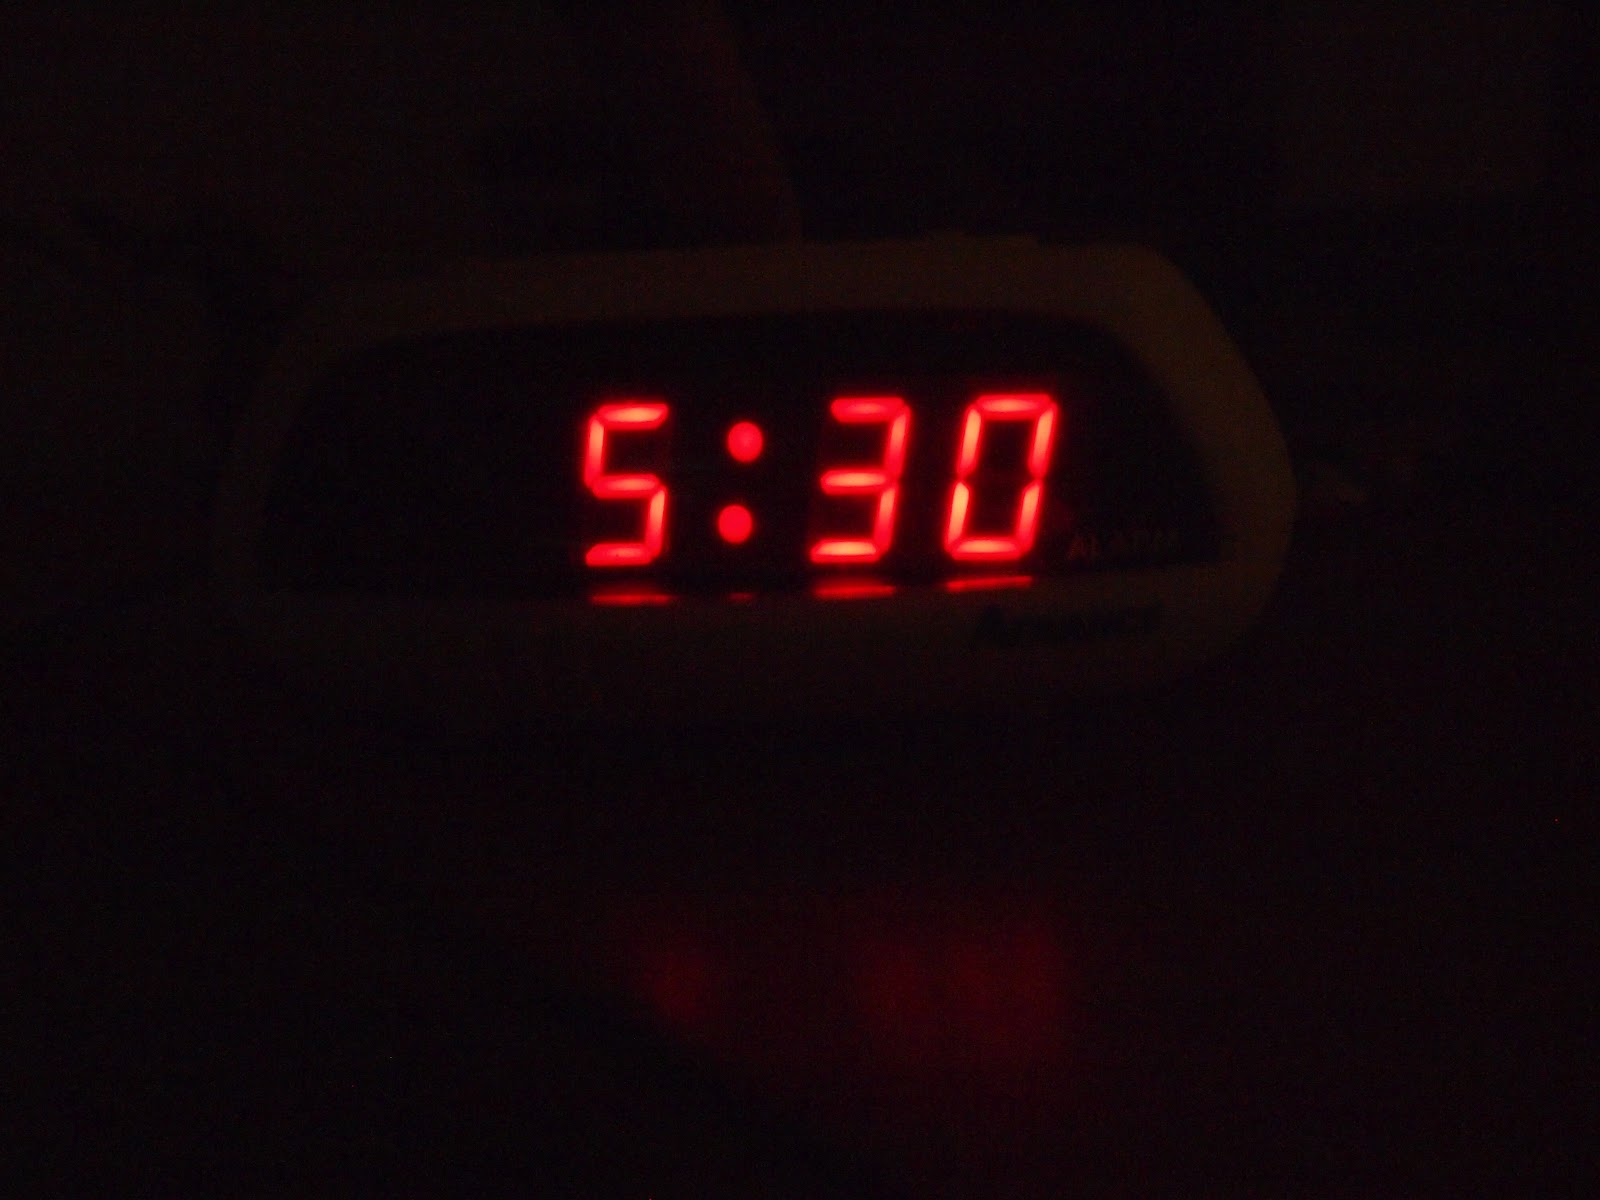 At 620am  my alarm goes off Alarm Clock Going Off At 6 30